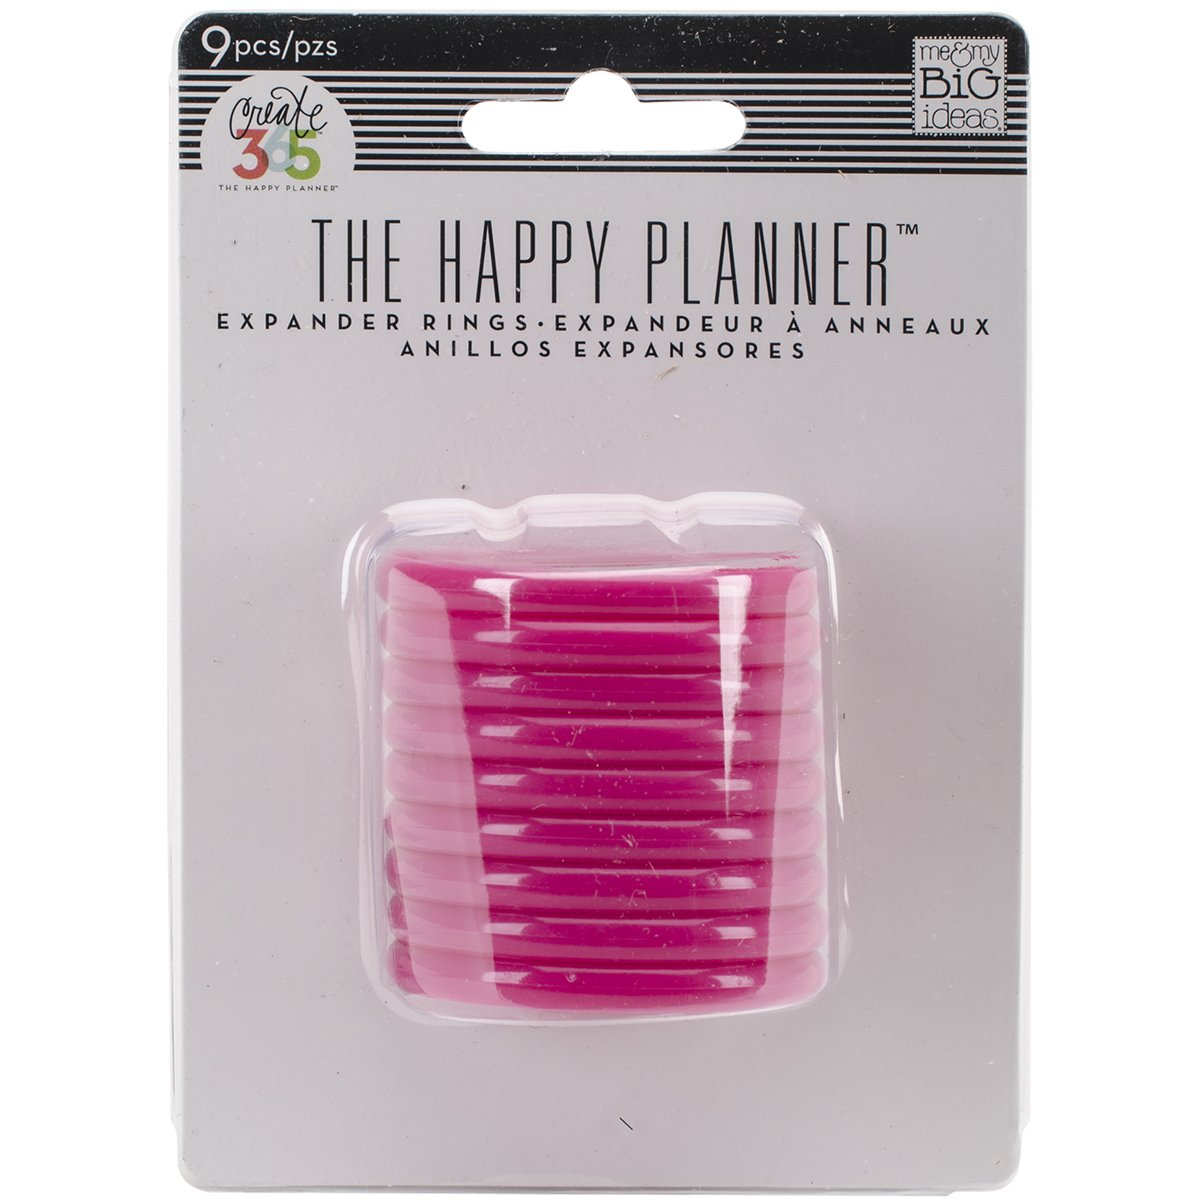 Me /& My Big Ideas Create 365 Planner Discs 9//Pkg-Clear Hot Pink 1.25/""